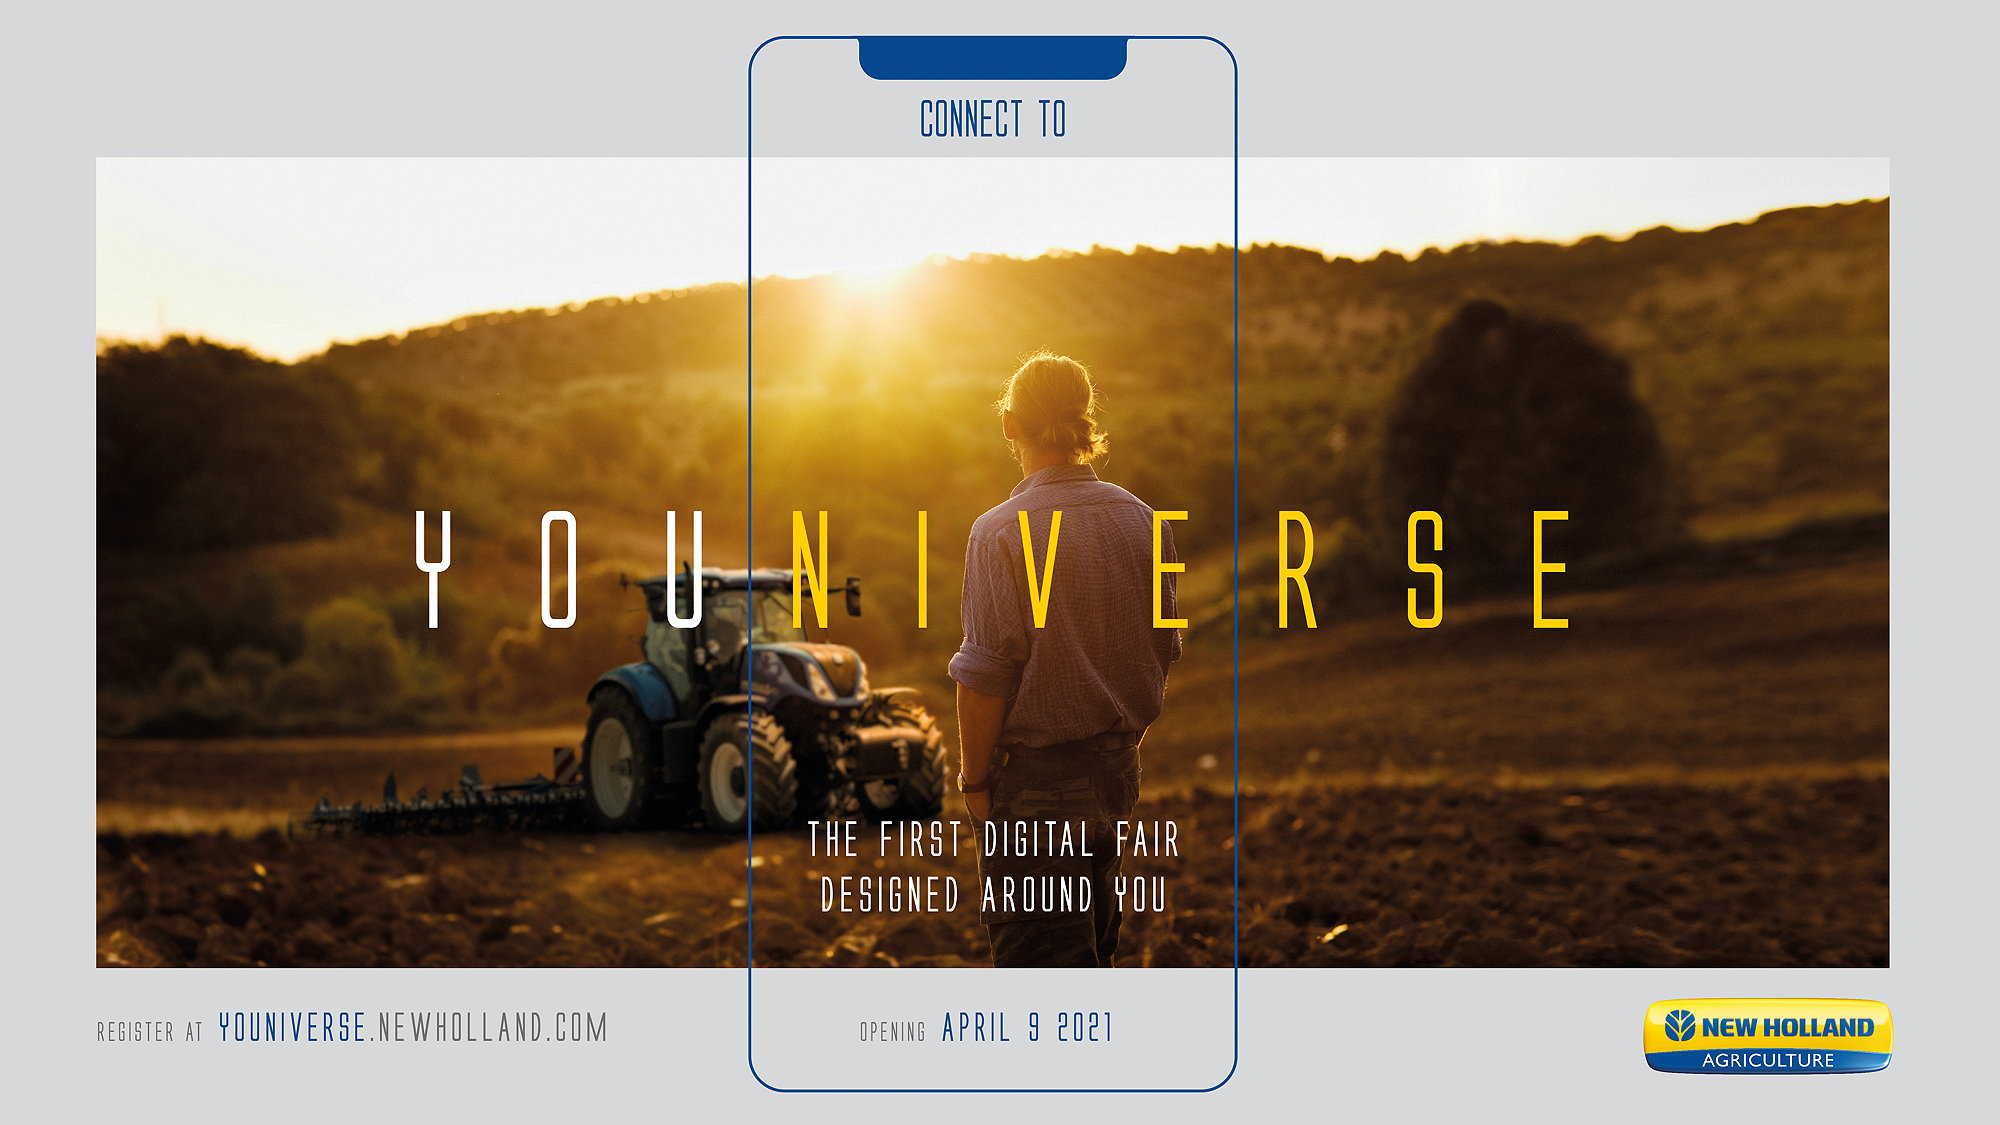 New Holland's Youniverse online fair begins in April 2021